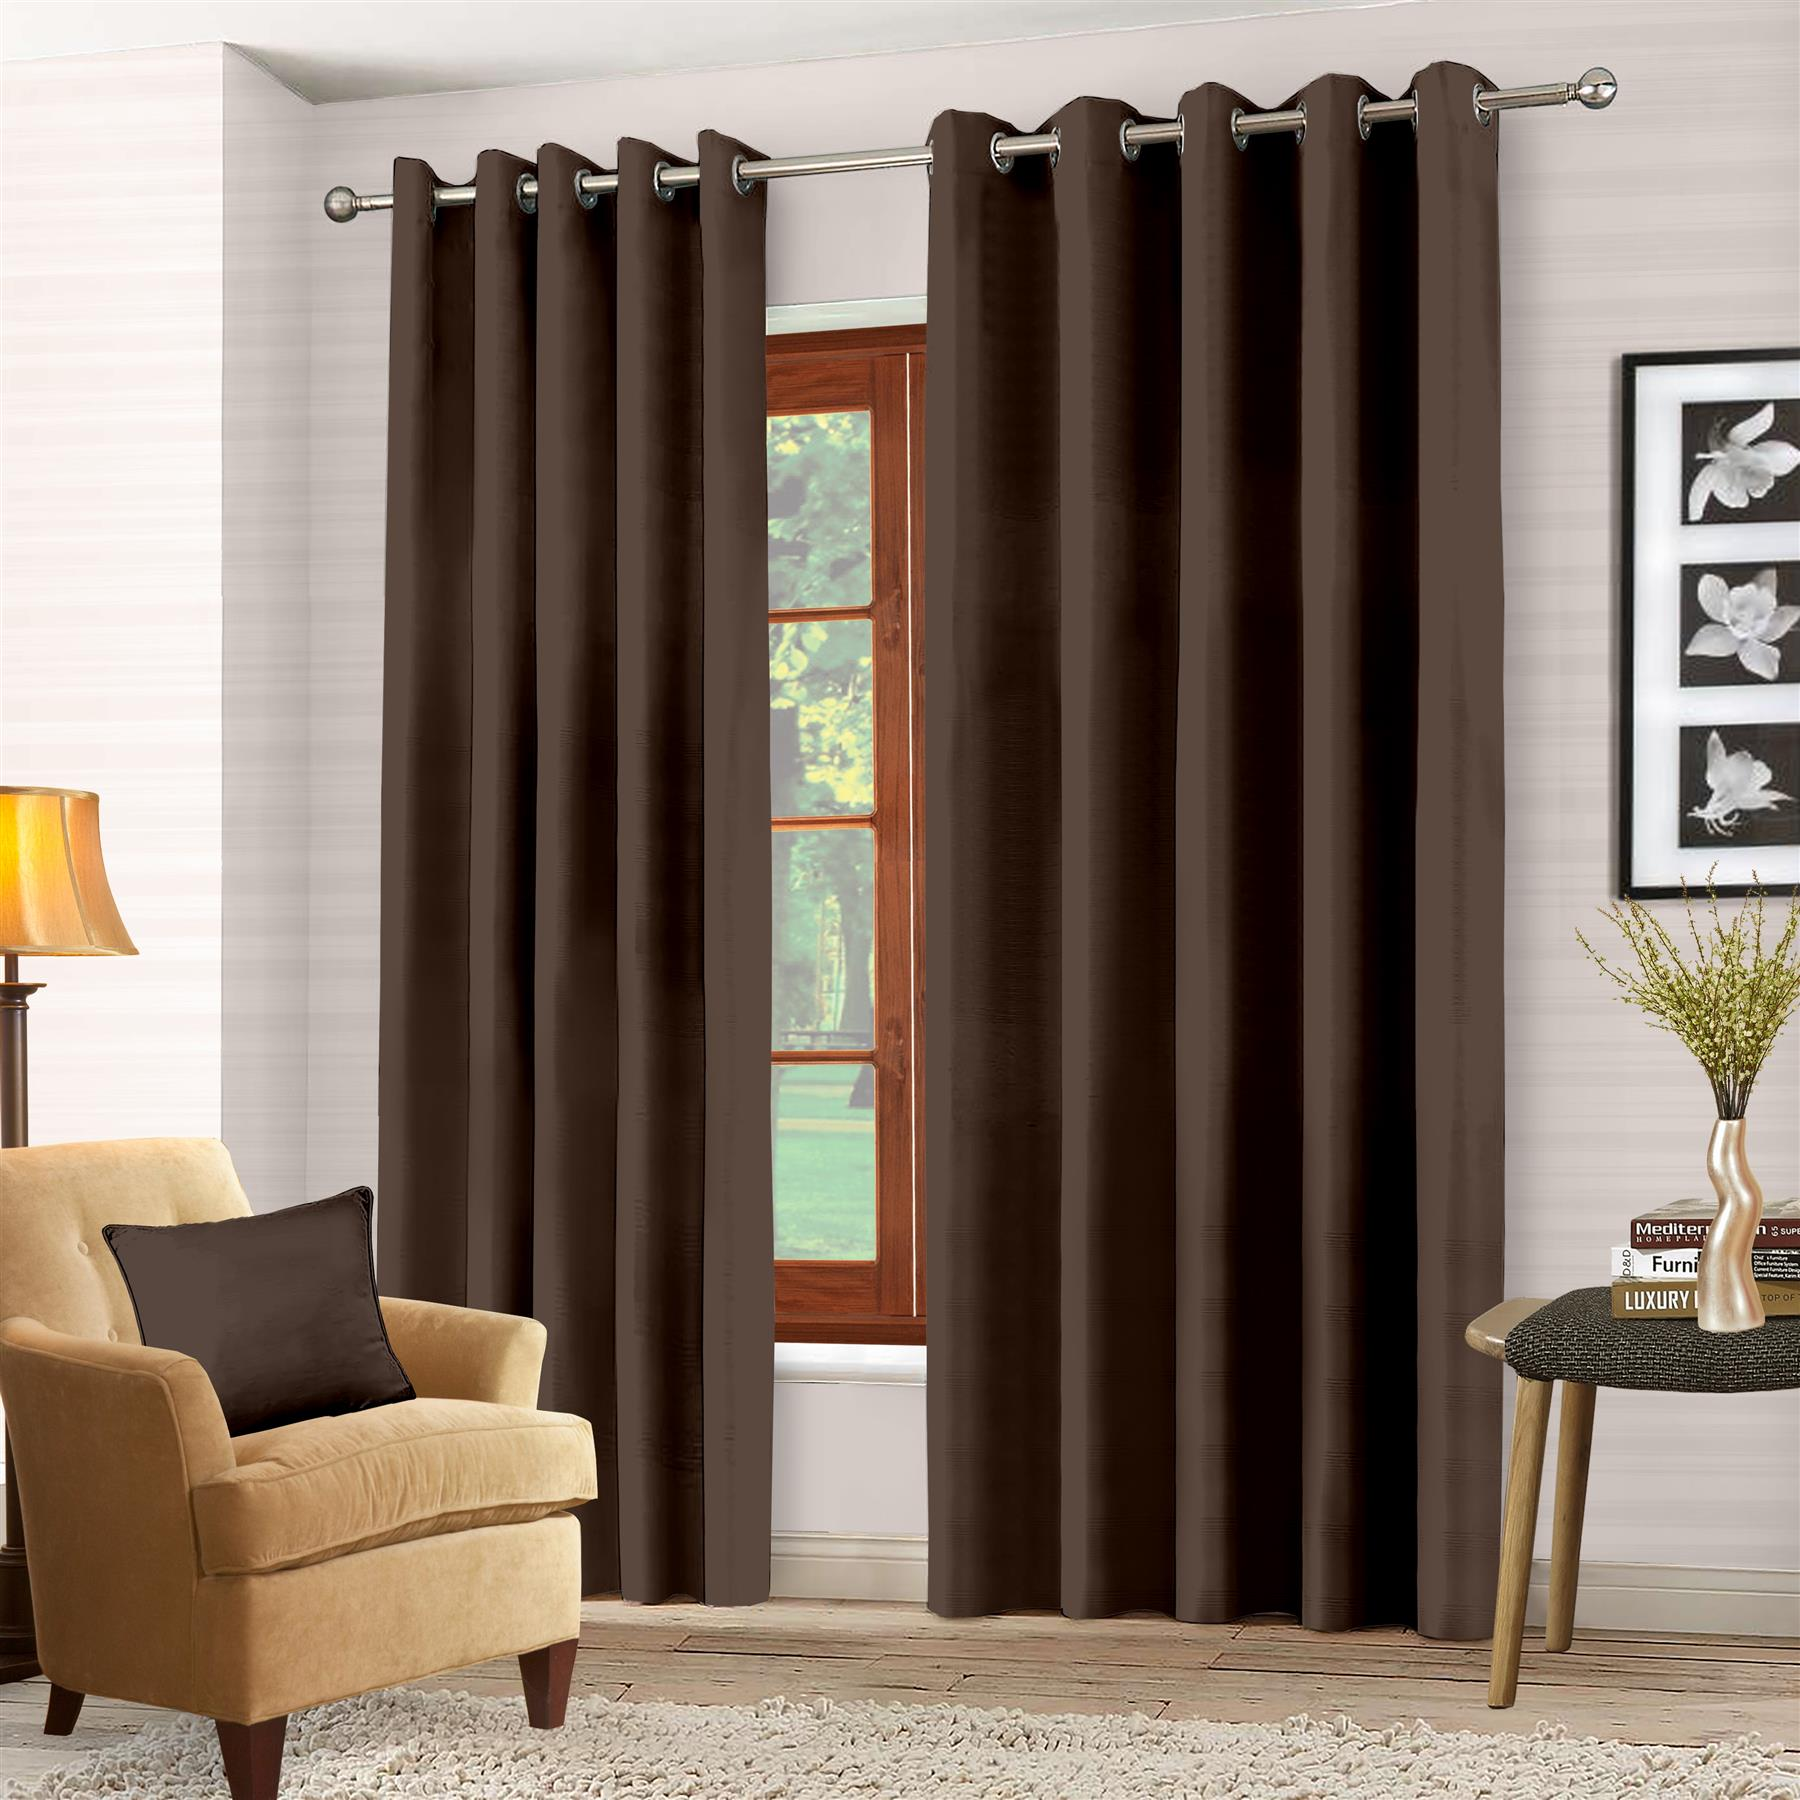 Luxury-Thermal-Blackout-Eyelet-Ring-Top-Curtains-Pair-with-tie-backs thumbnail 10